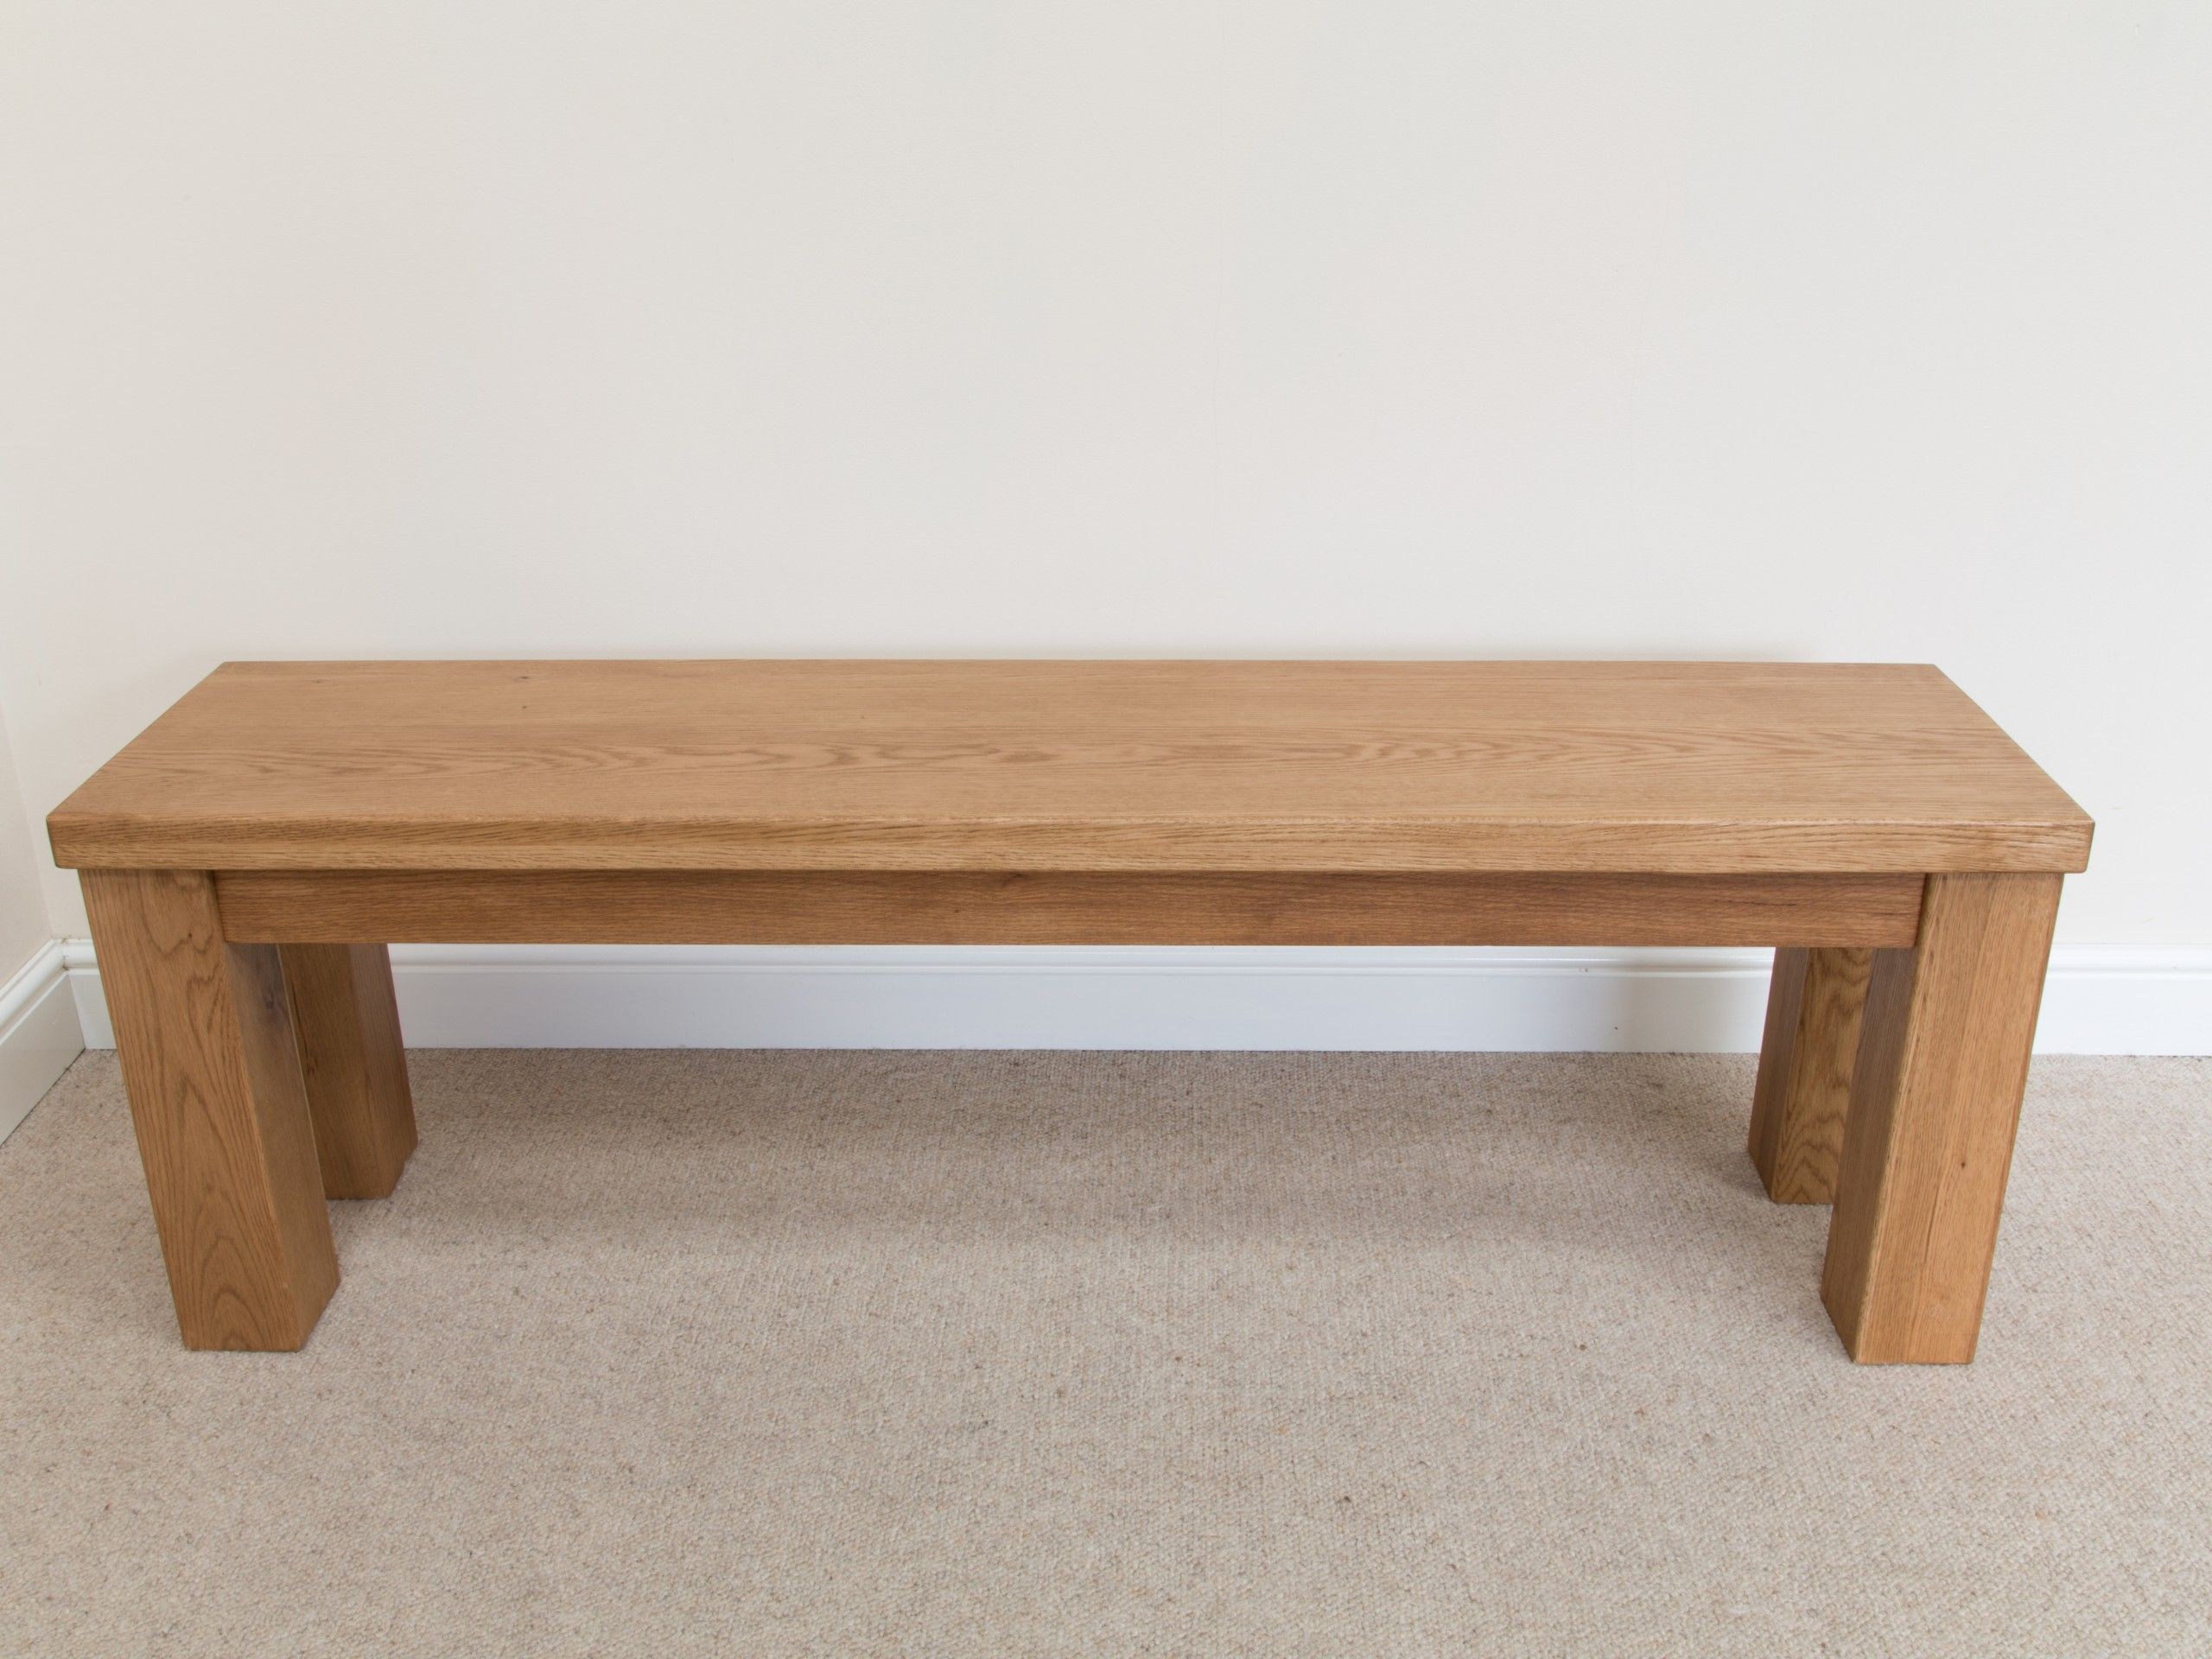 Genial Http://www.topfurniture.co.uk/p/benches/1.5m Country Oak Indoor Solid Wooden  Dining Benches.html